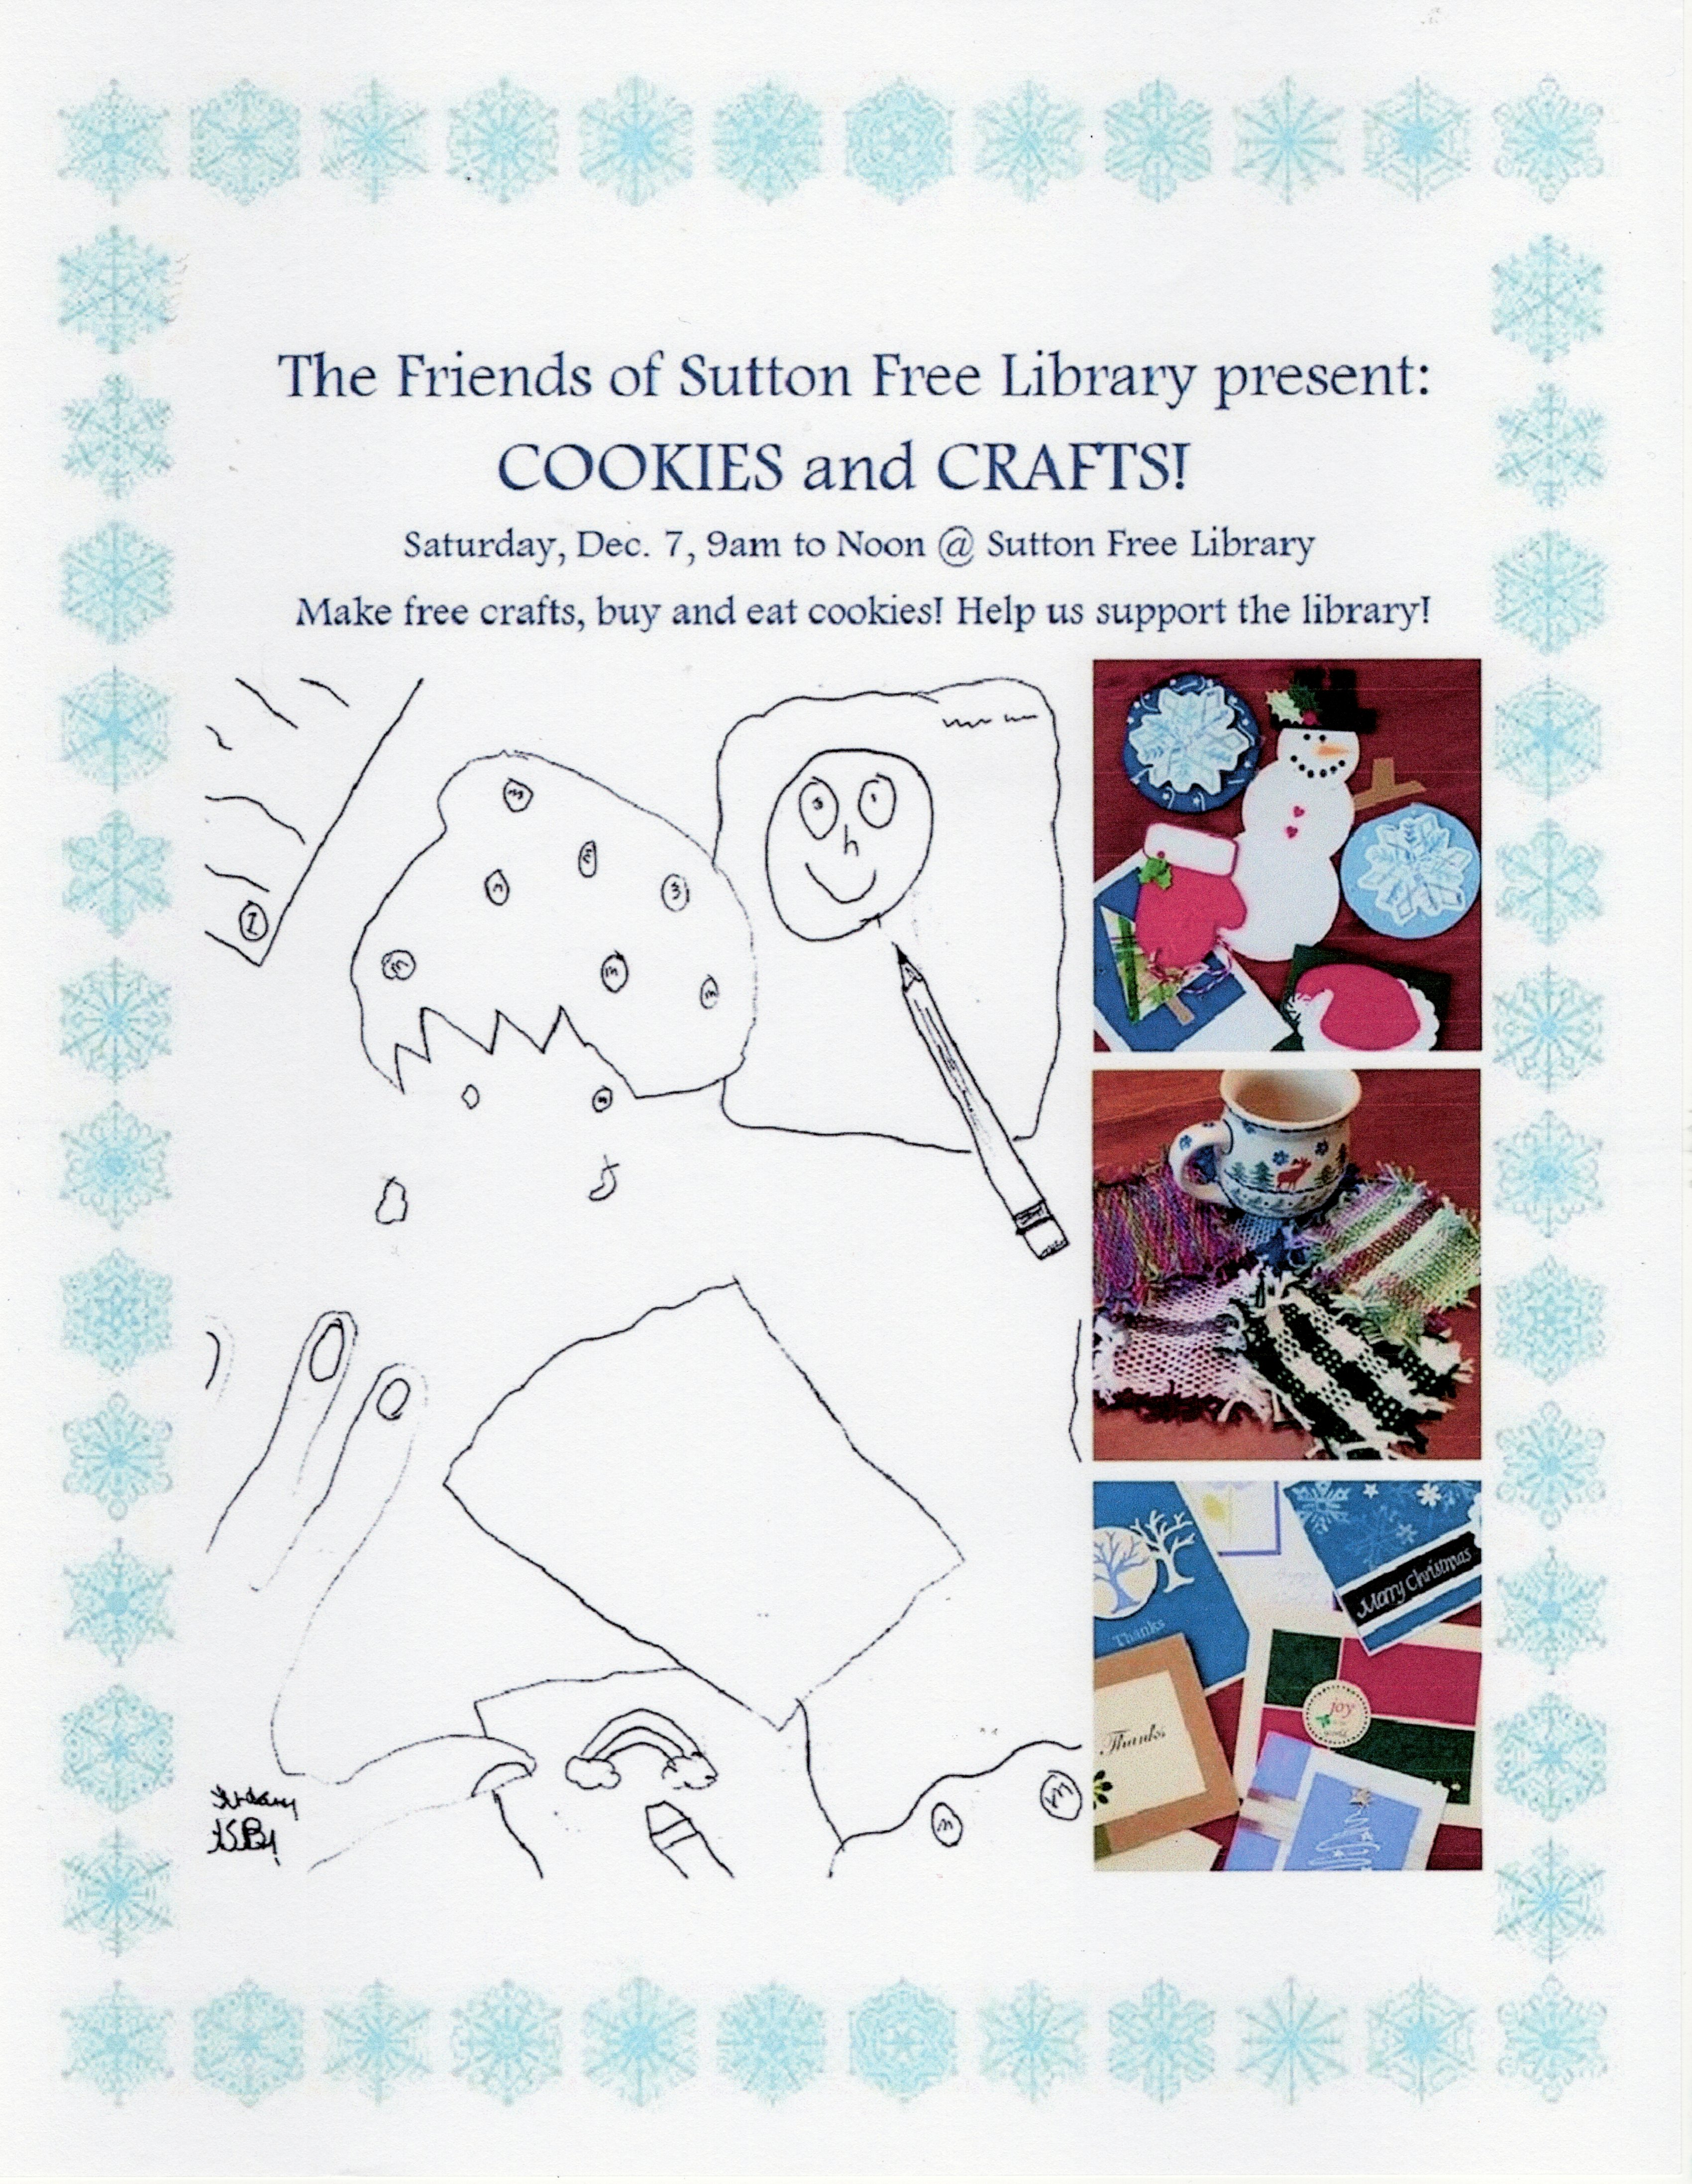 Friends of Sutton Free Library Cookies & Crafts @ sutton free library   Bradford   New Hampshire   United States